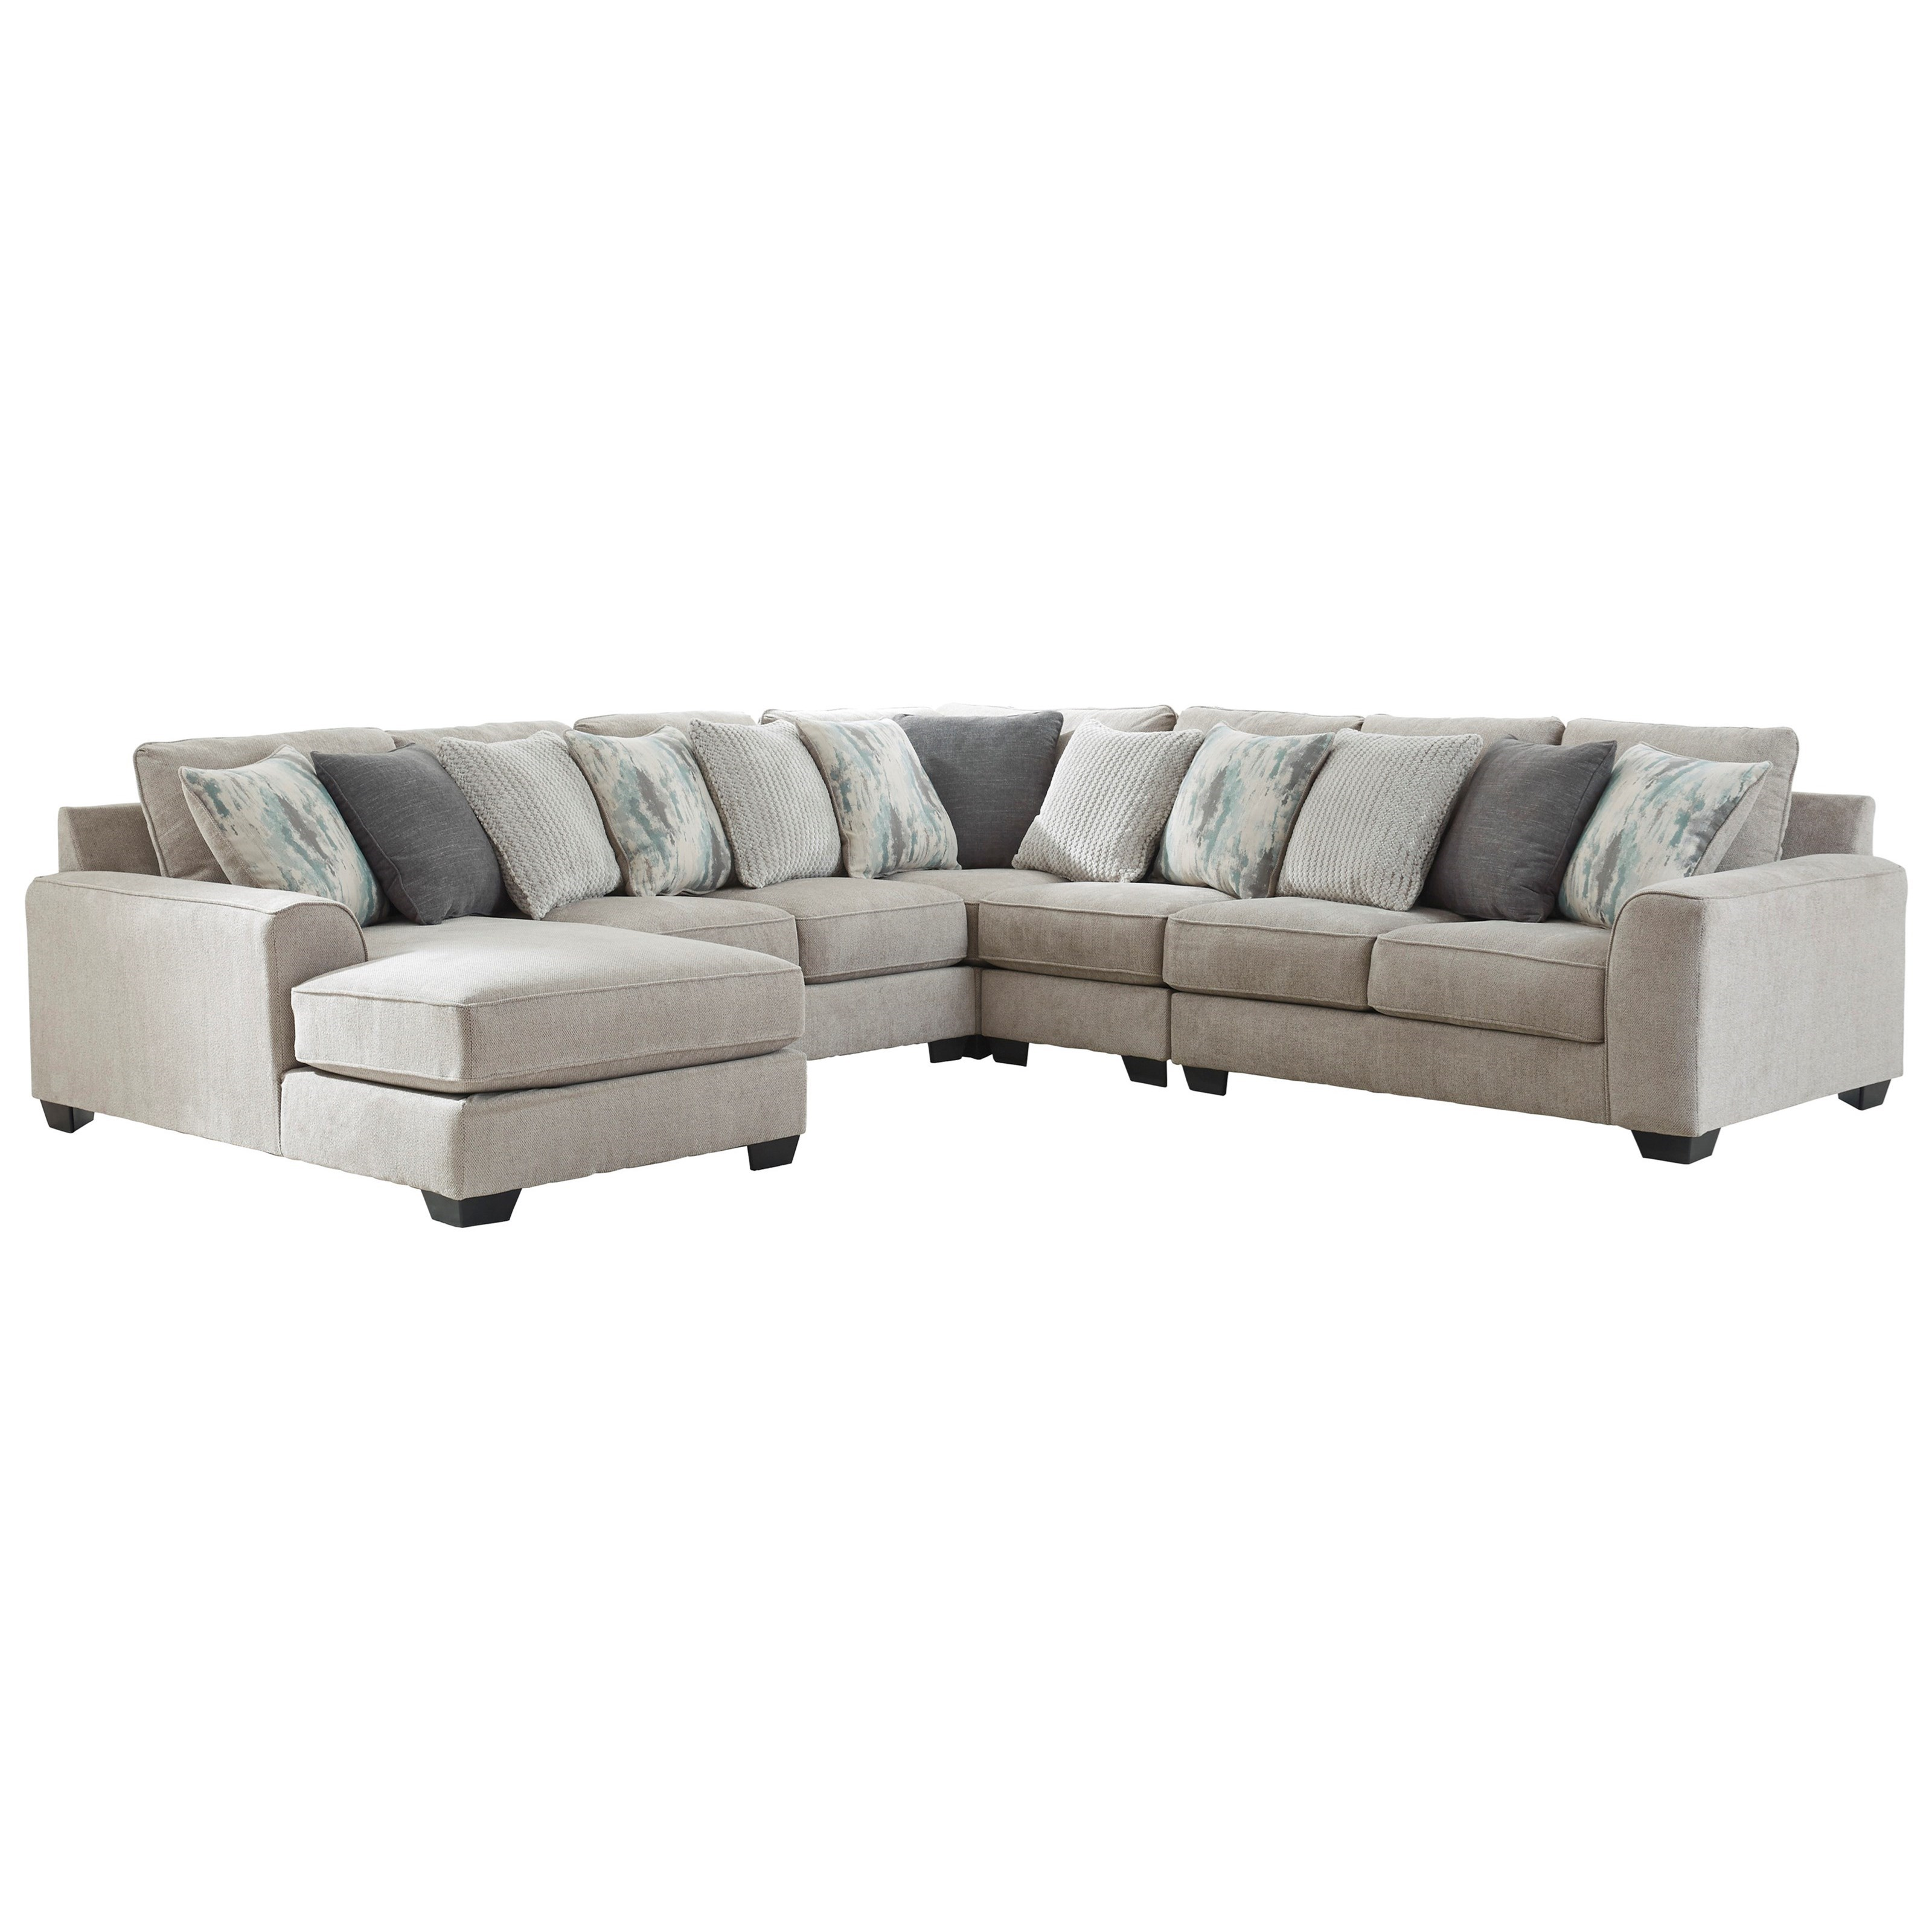 Ardsley 5-Piece Sectional with Left Chaise by Benchcraft at Lapeer Furniture & Mattress Center